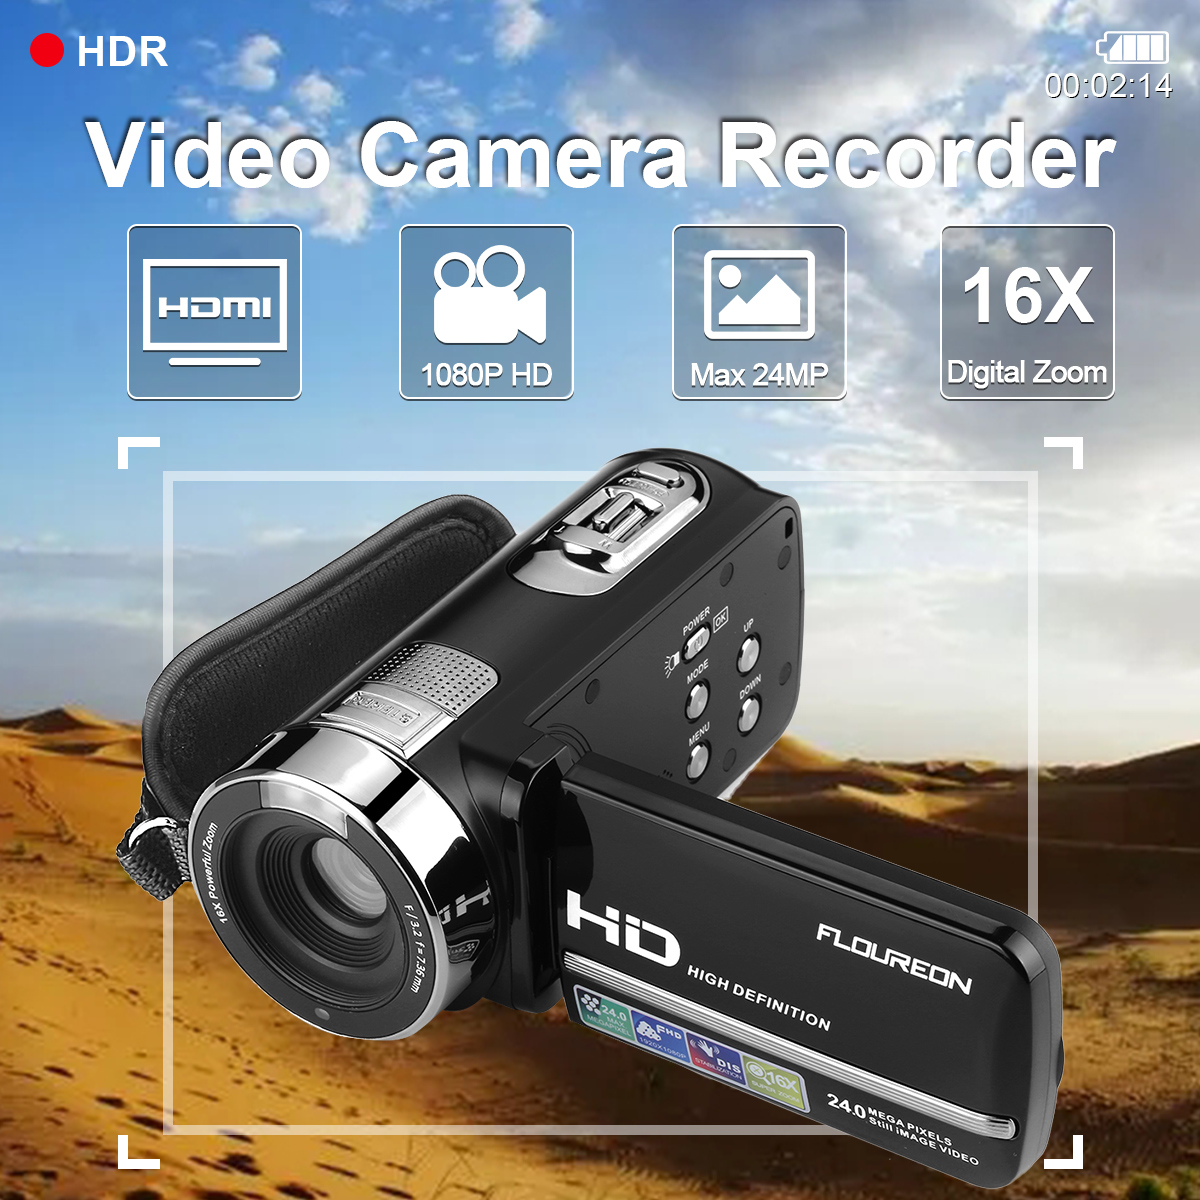 FLOUREON 1080P FULL HD Camcorder Digital Video Camera DV 3.0 TFT LCD Screen 16x Zoom 270 Degrees Rotation for Sport/Youtube/Short Films Video Recording (Black)